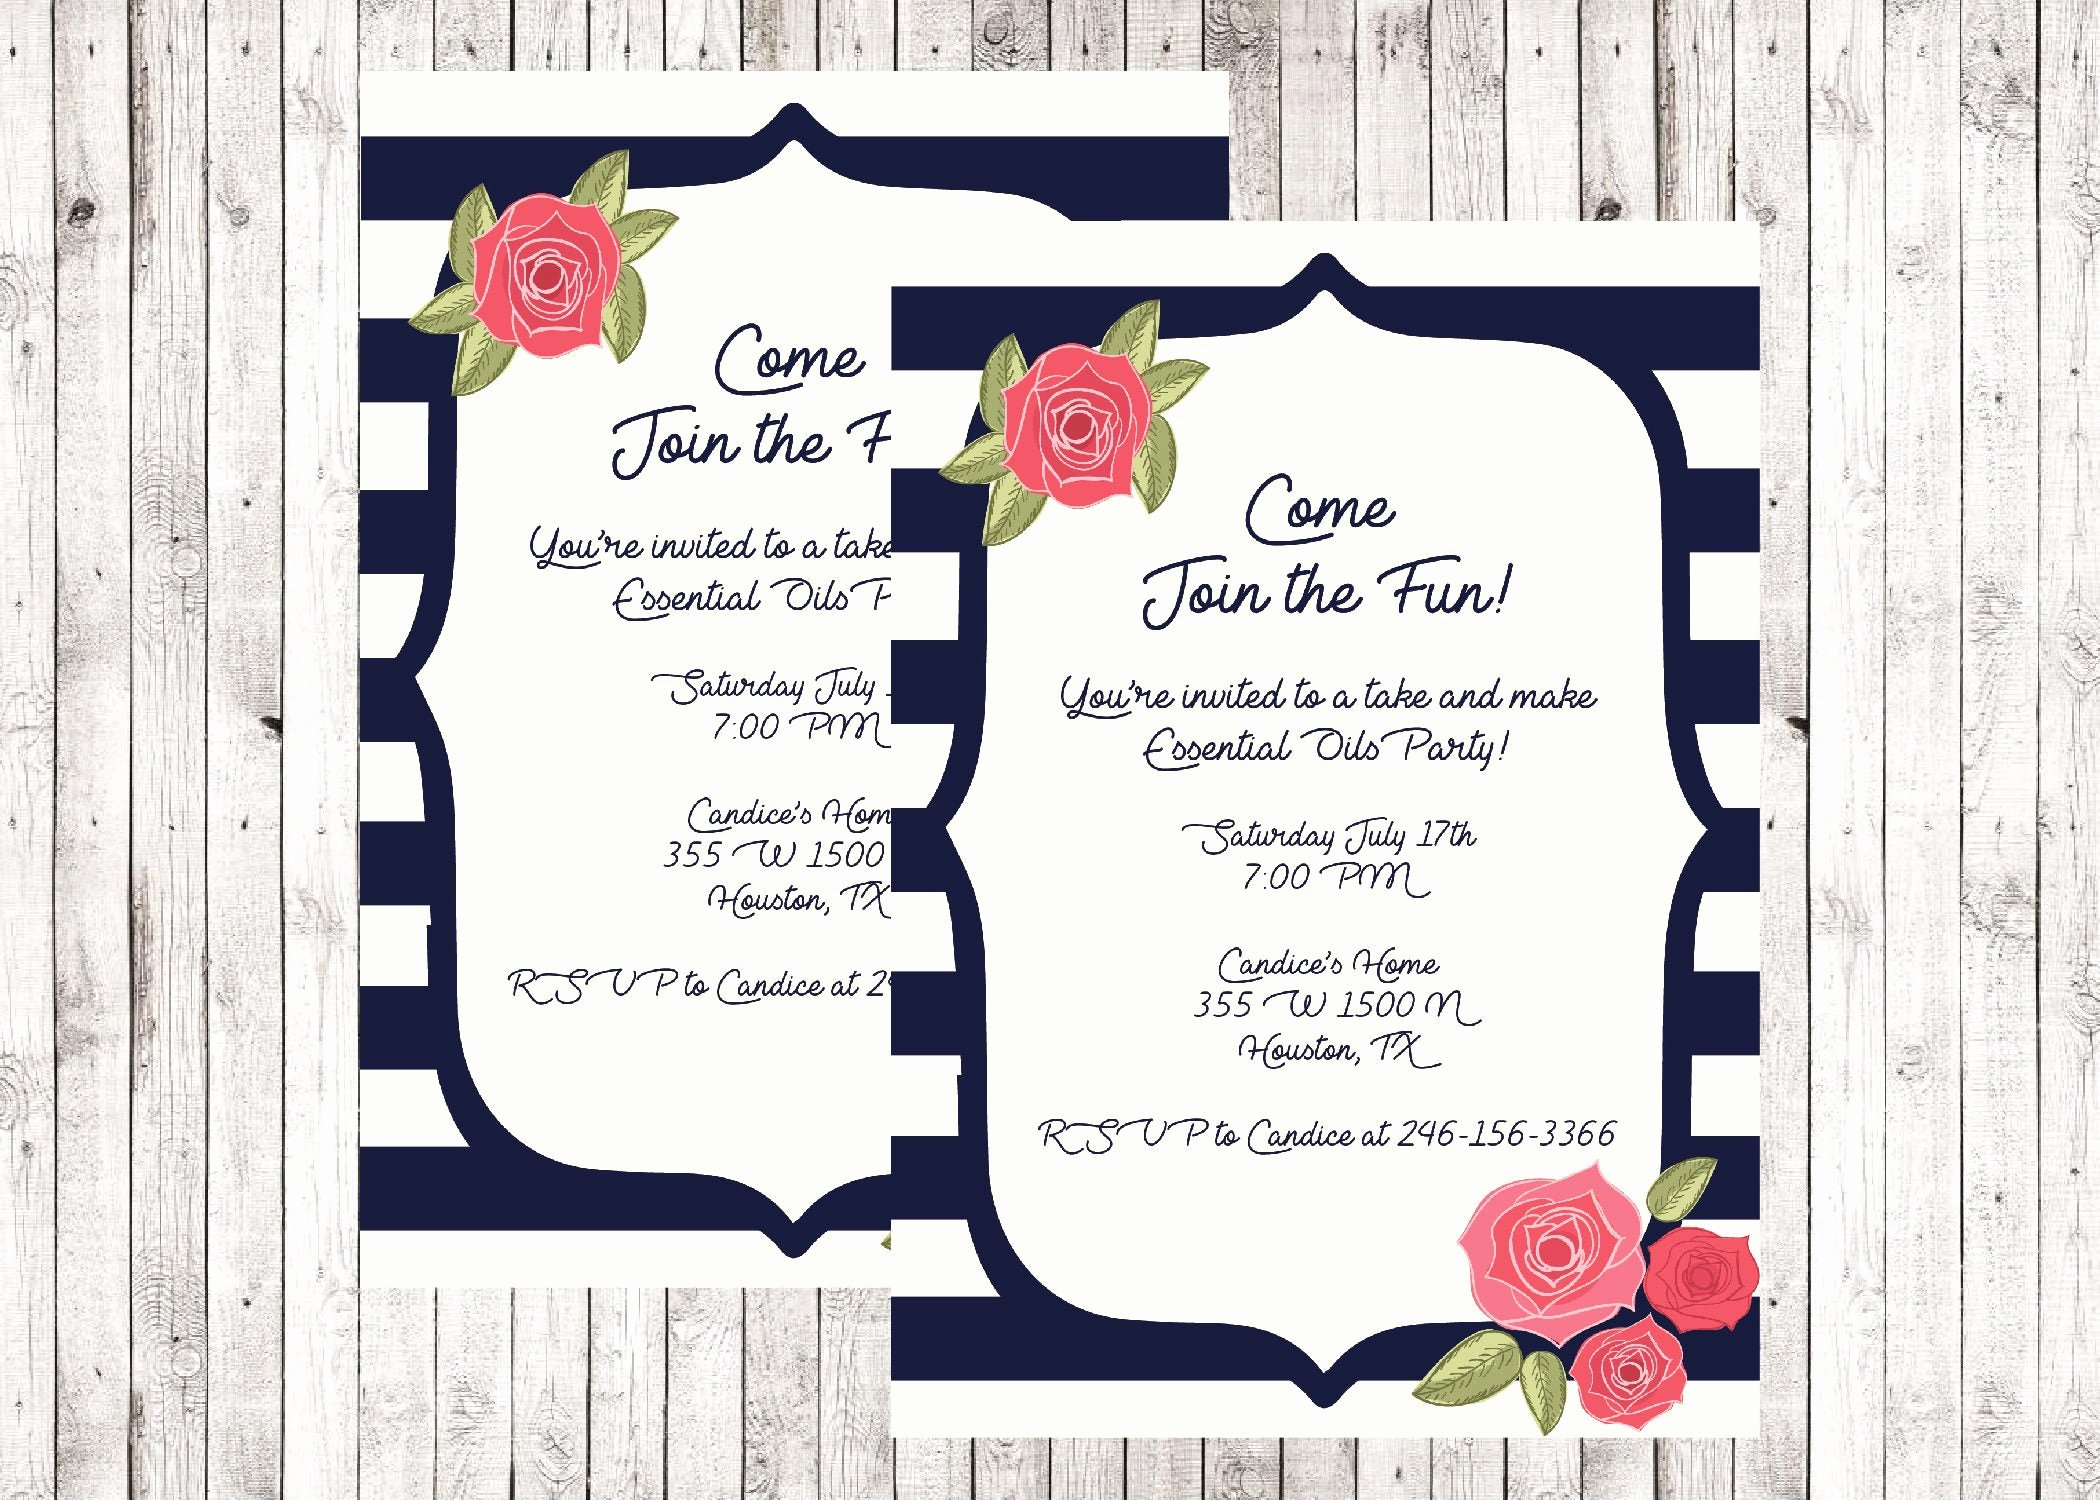 Mary Kay Party Invites Awesome Direct Sales Home Party Business Invitation Mary Kay